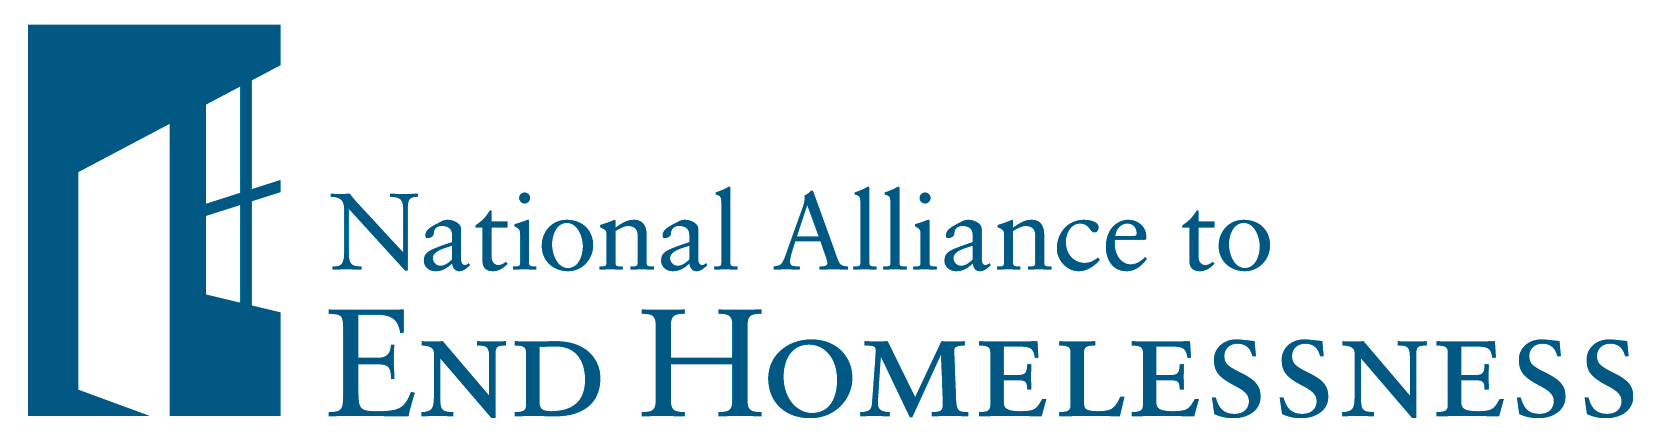 National Alliance to End Homelessness logo.